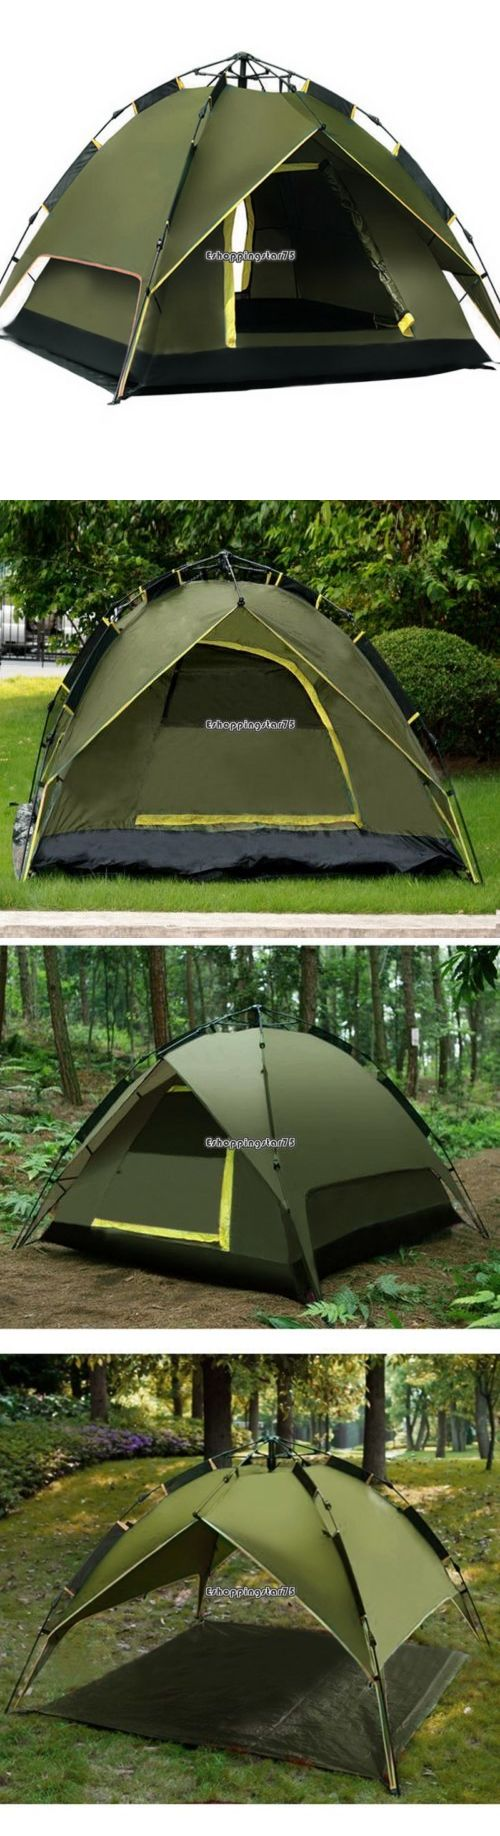 Tents 179010: Double Layer Rainproof Automatic Tent Outdoors Instant Camping Tent 2-4Person Us -> BUY IT NOW ONLY: $35.95 on eBay!